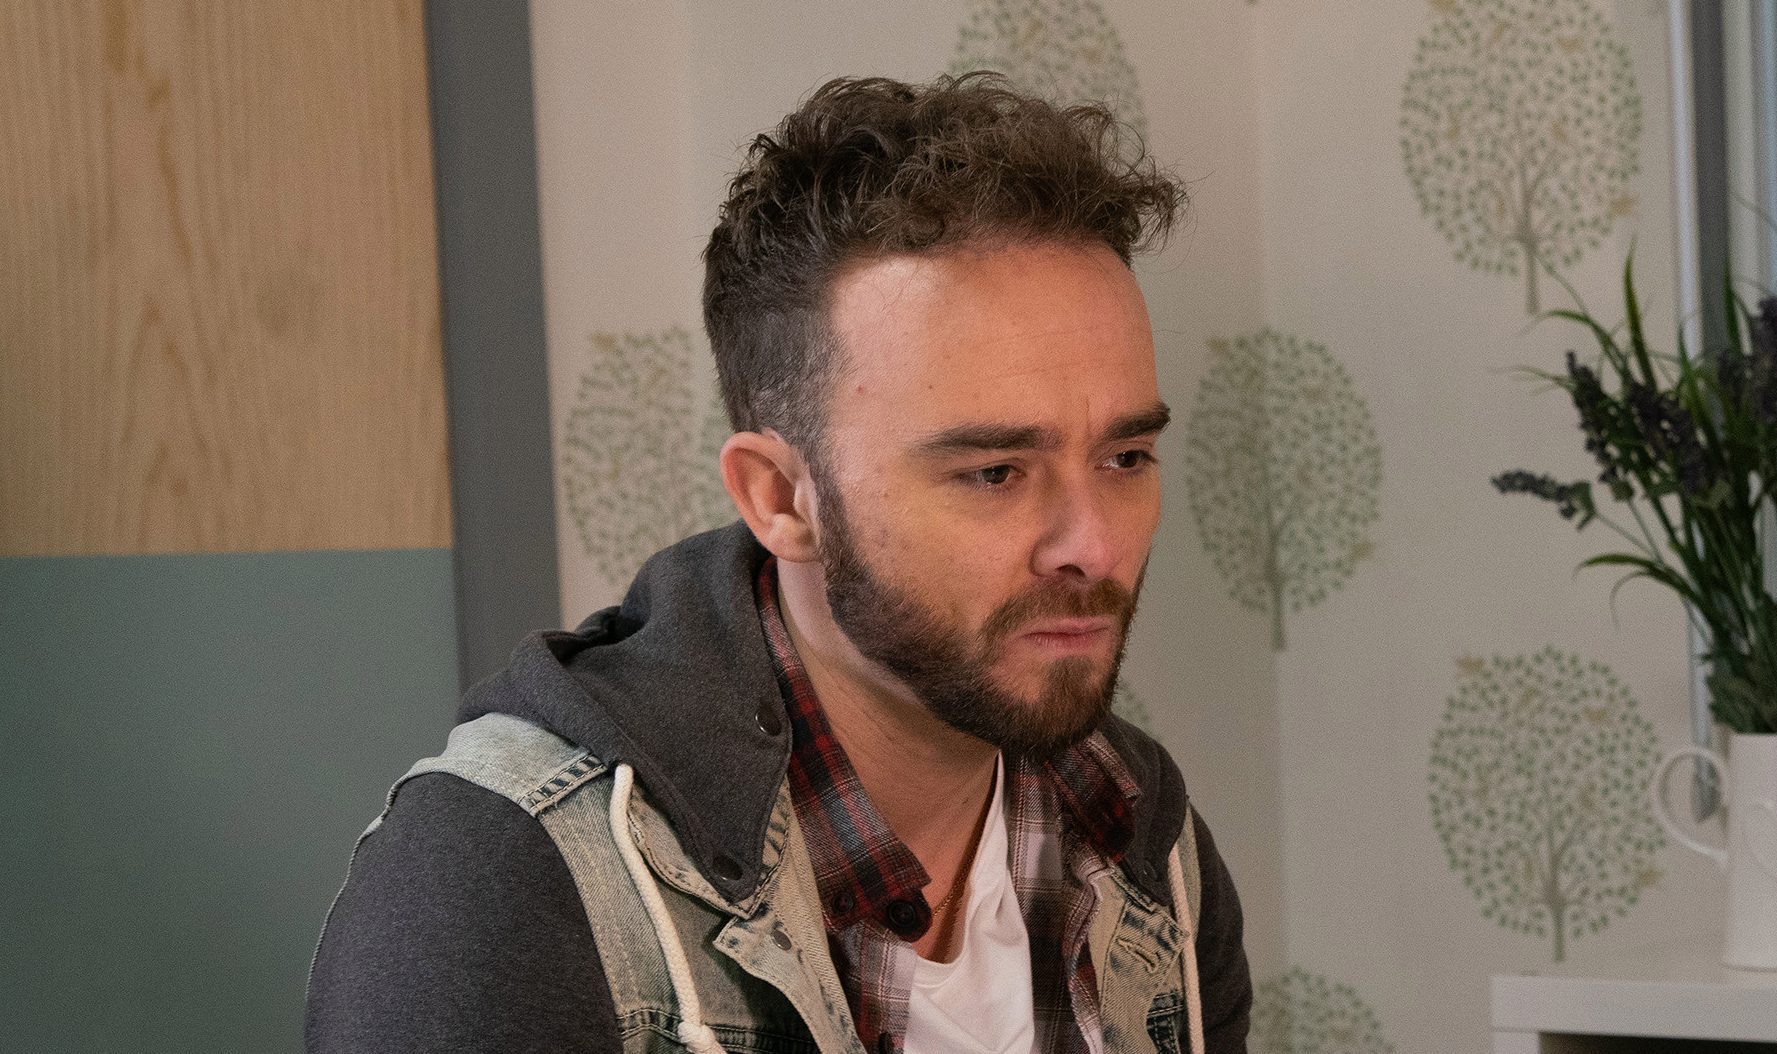 Coronation Street teases dark storyline for David Platt